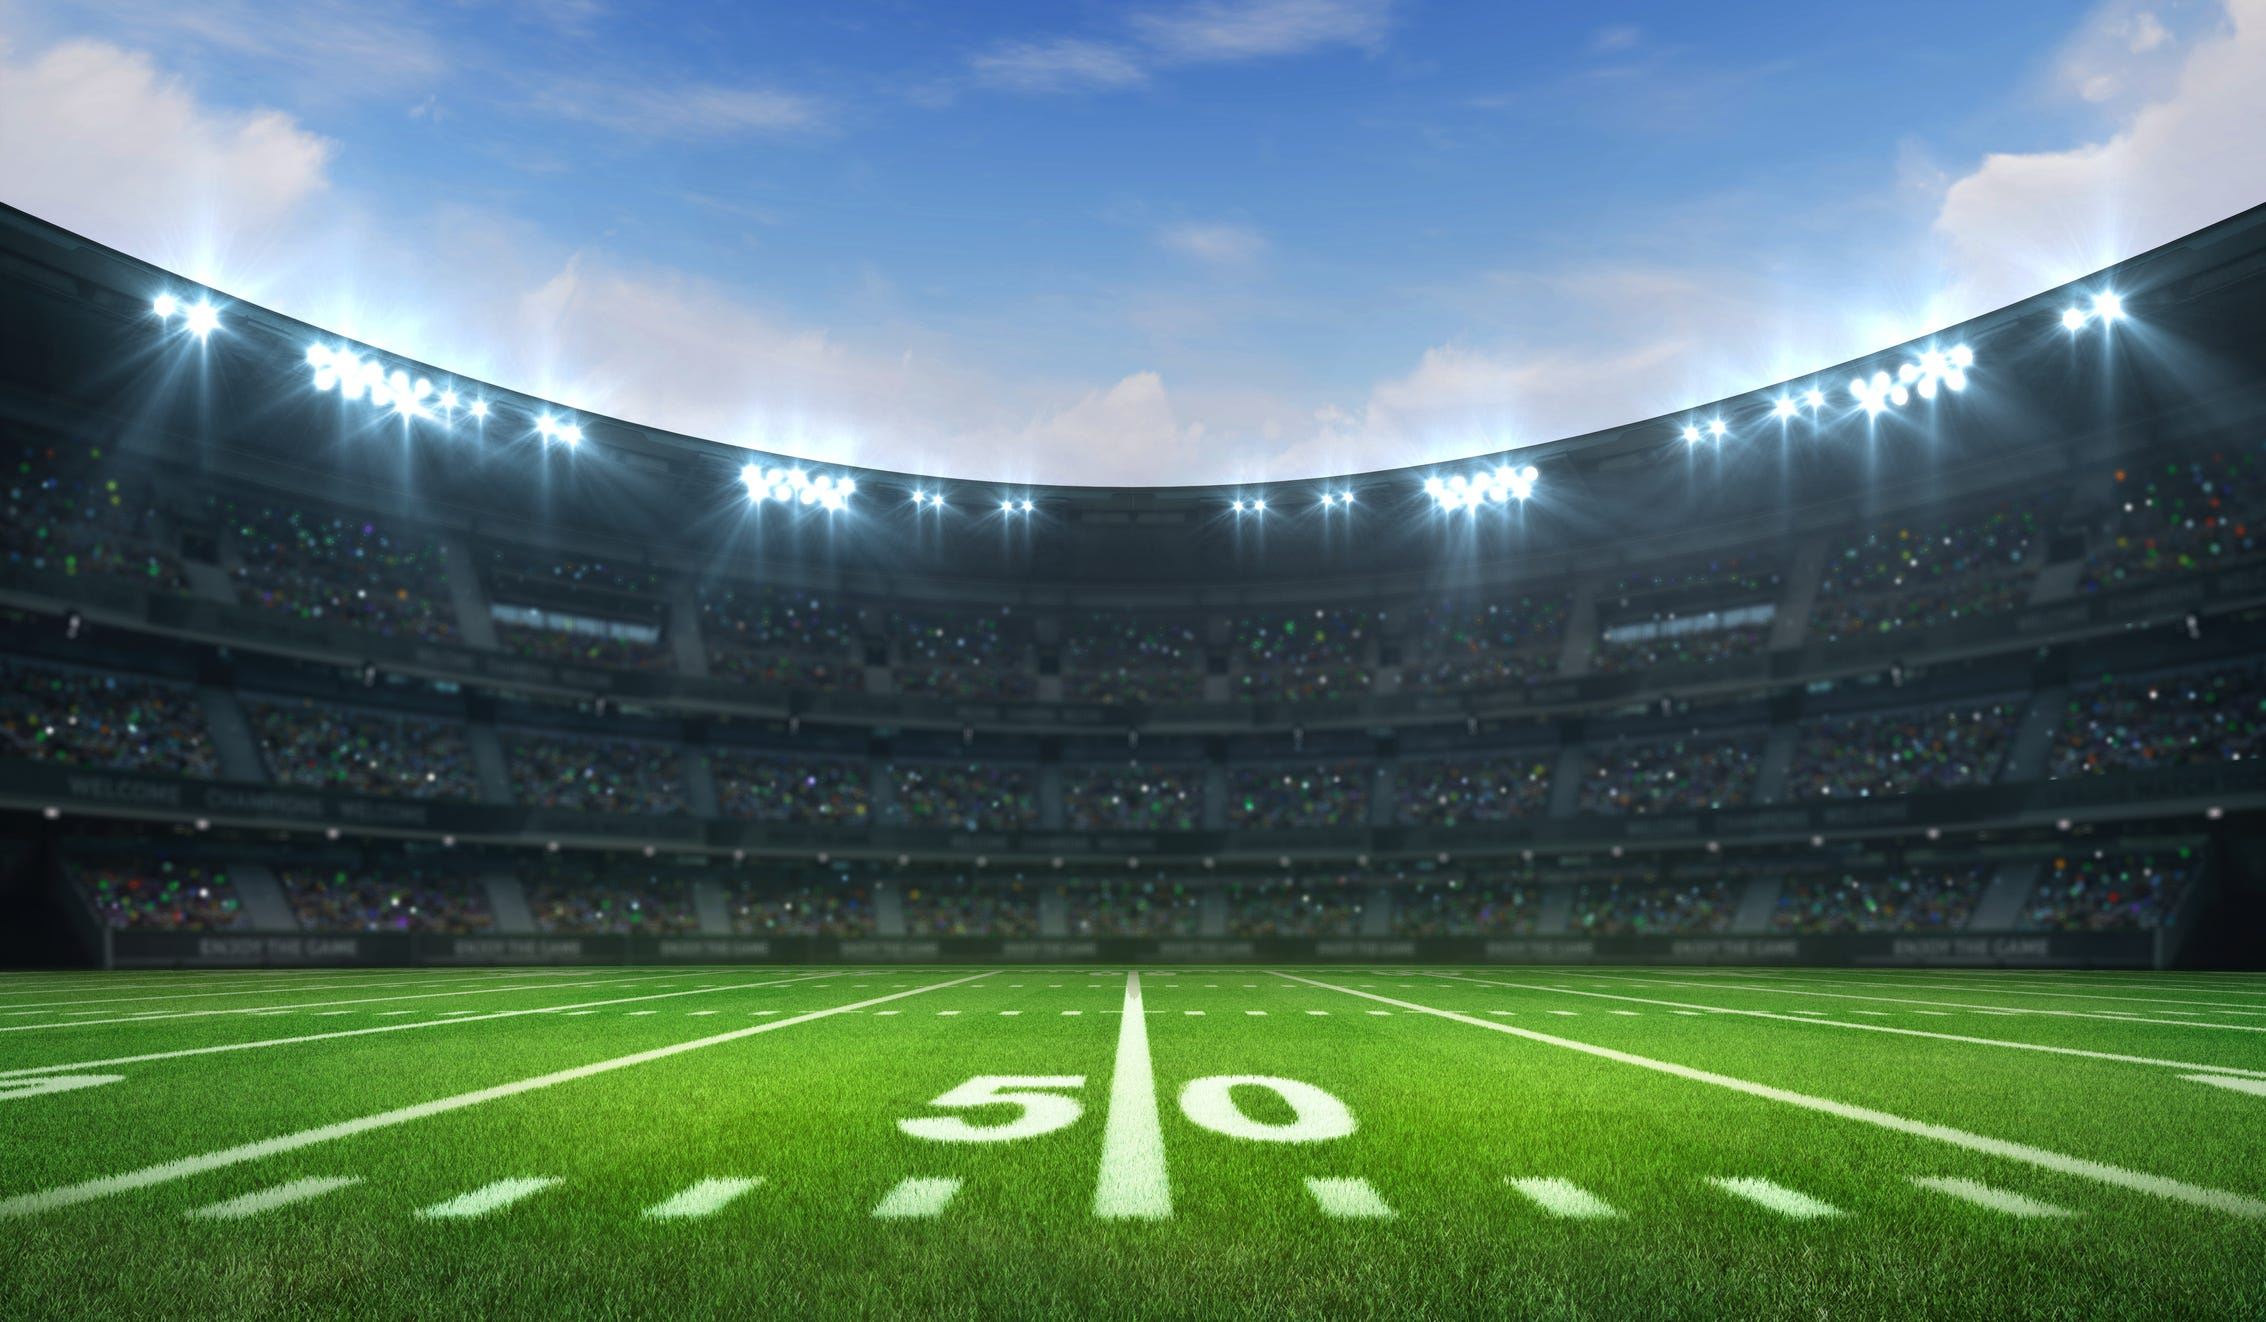 Teen Petitions to Move Super Bowl to Saturday